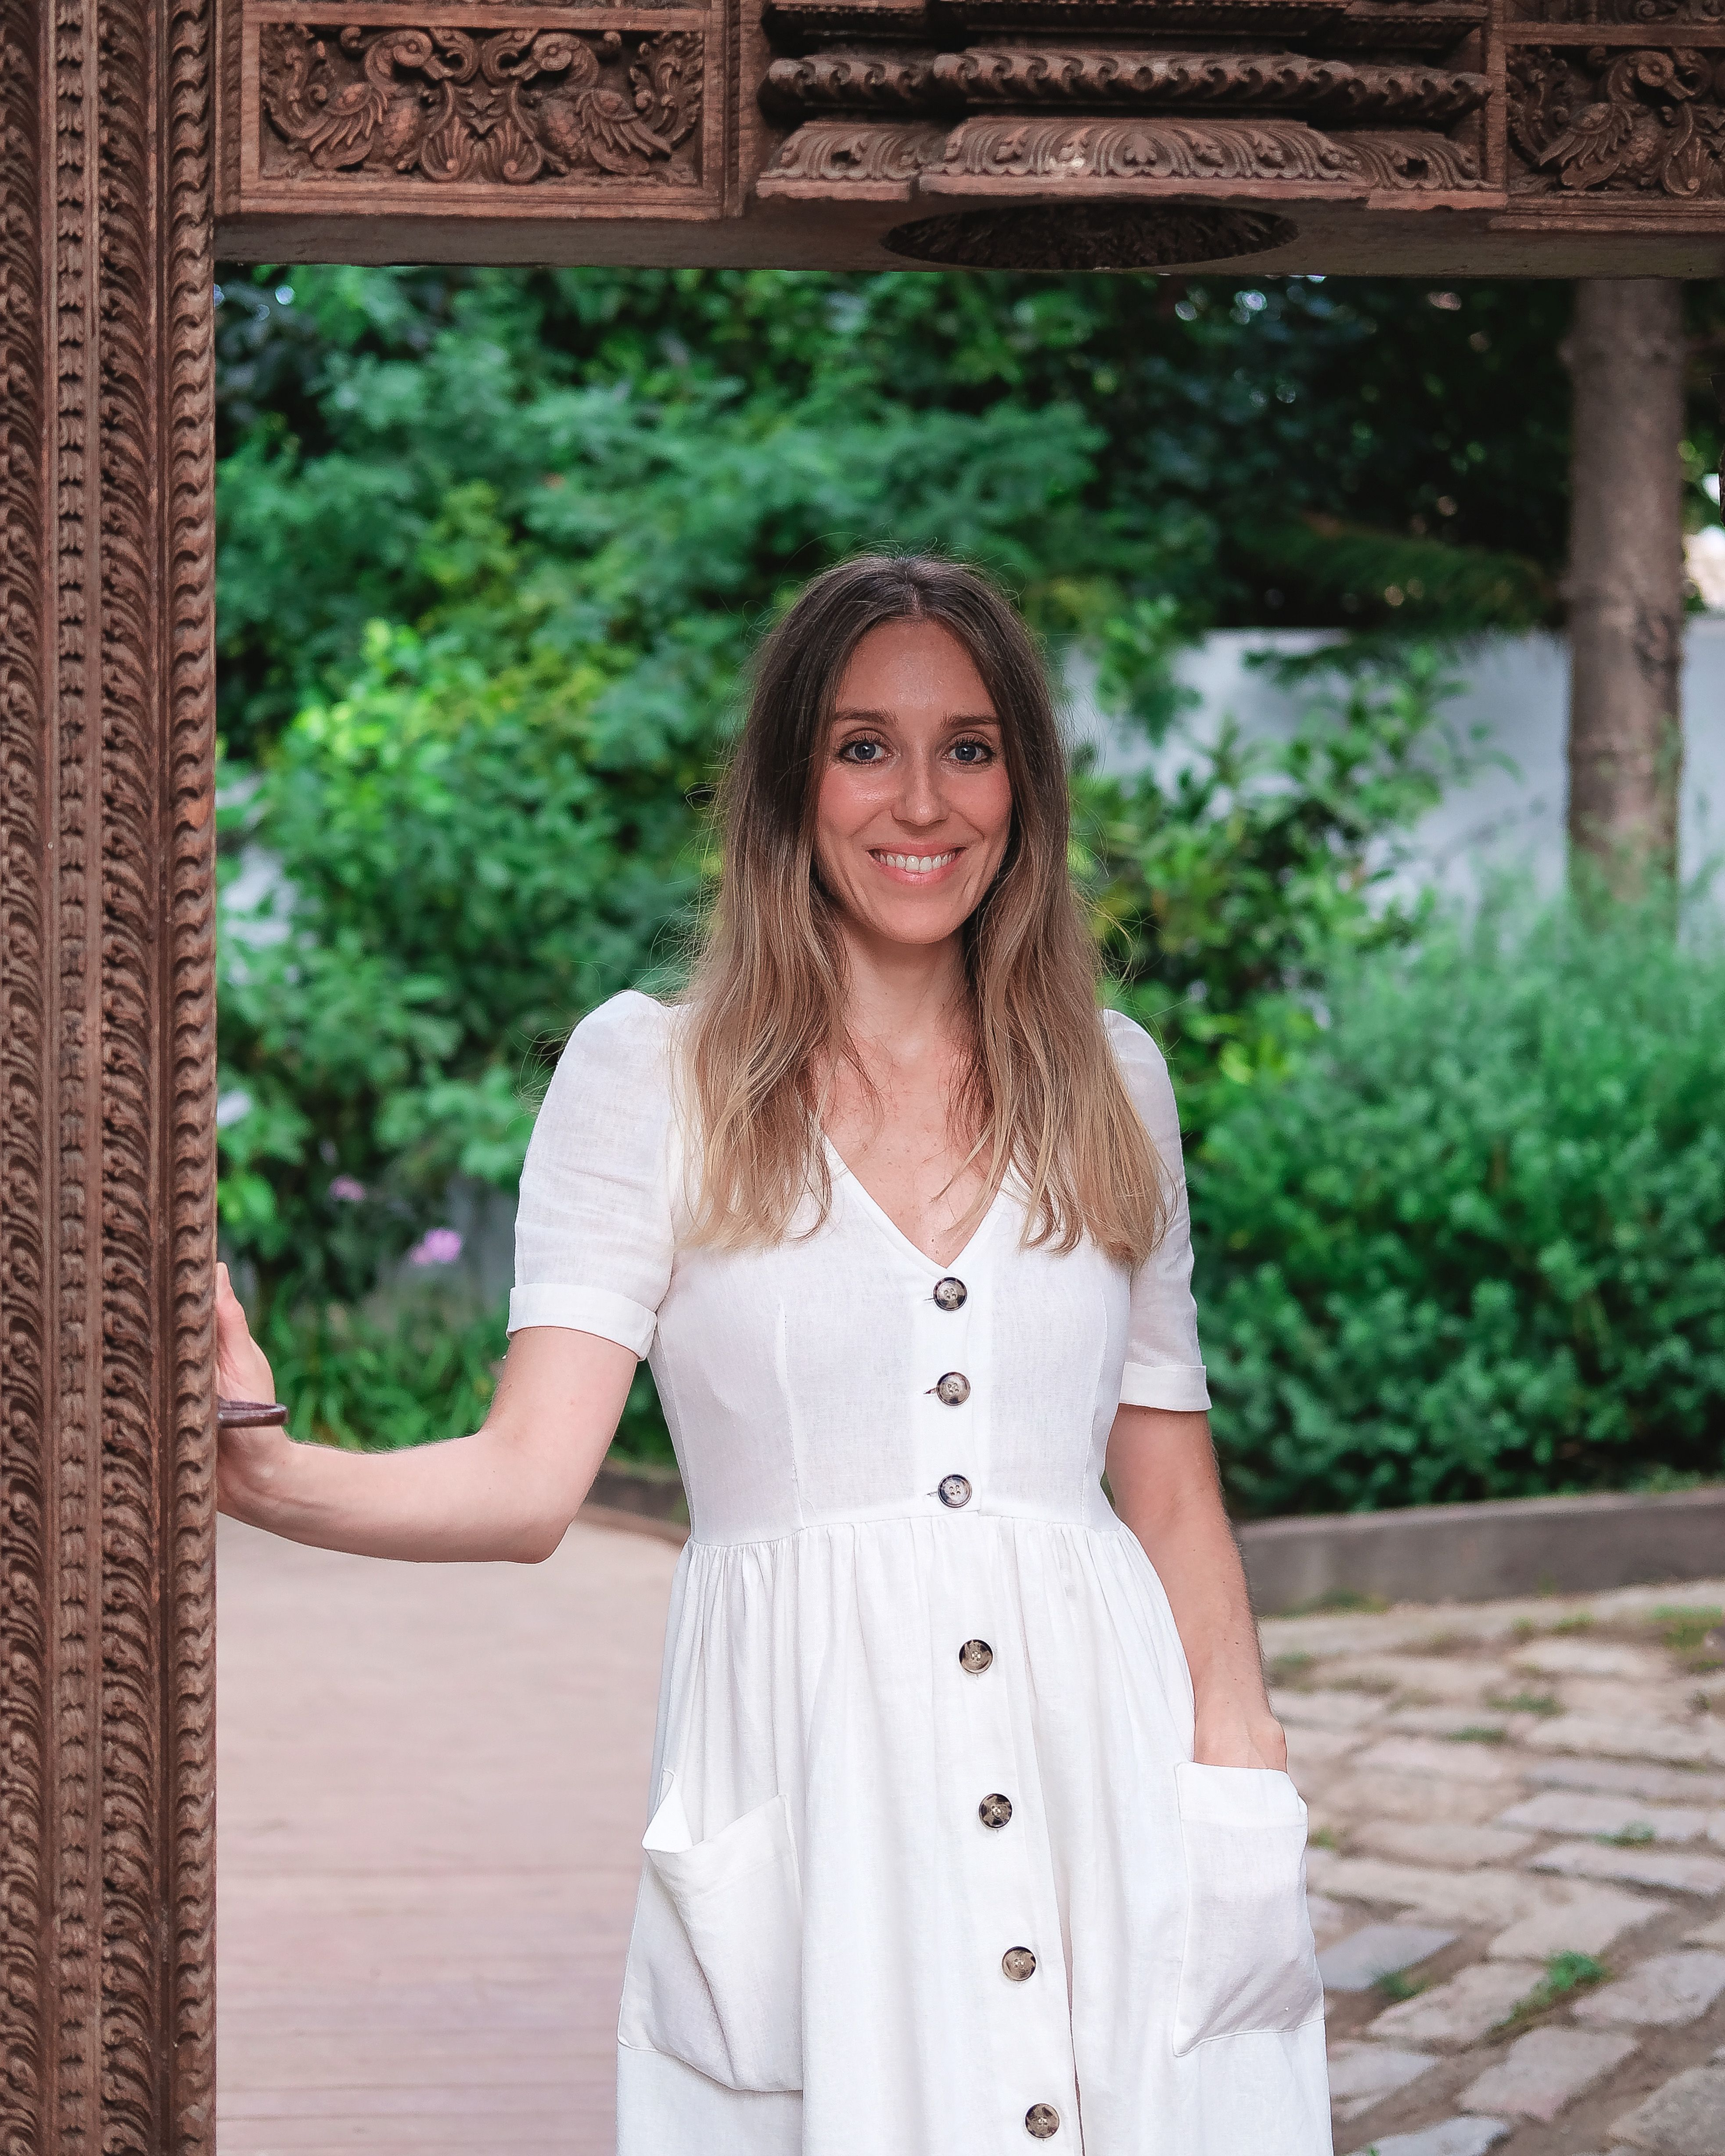 Meet Paloma Our Integrative Nutritionist And Wellness Health Coach At The Marbella Club Paloma Forms Part Of A Team Hotel Marbella Wellness Hotel Marbella